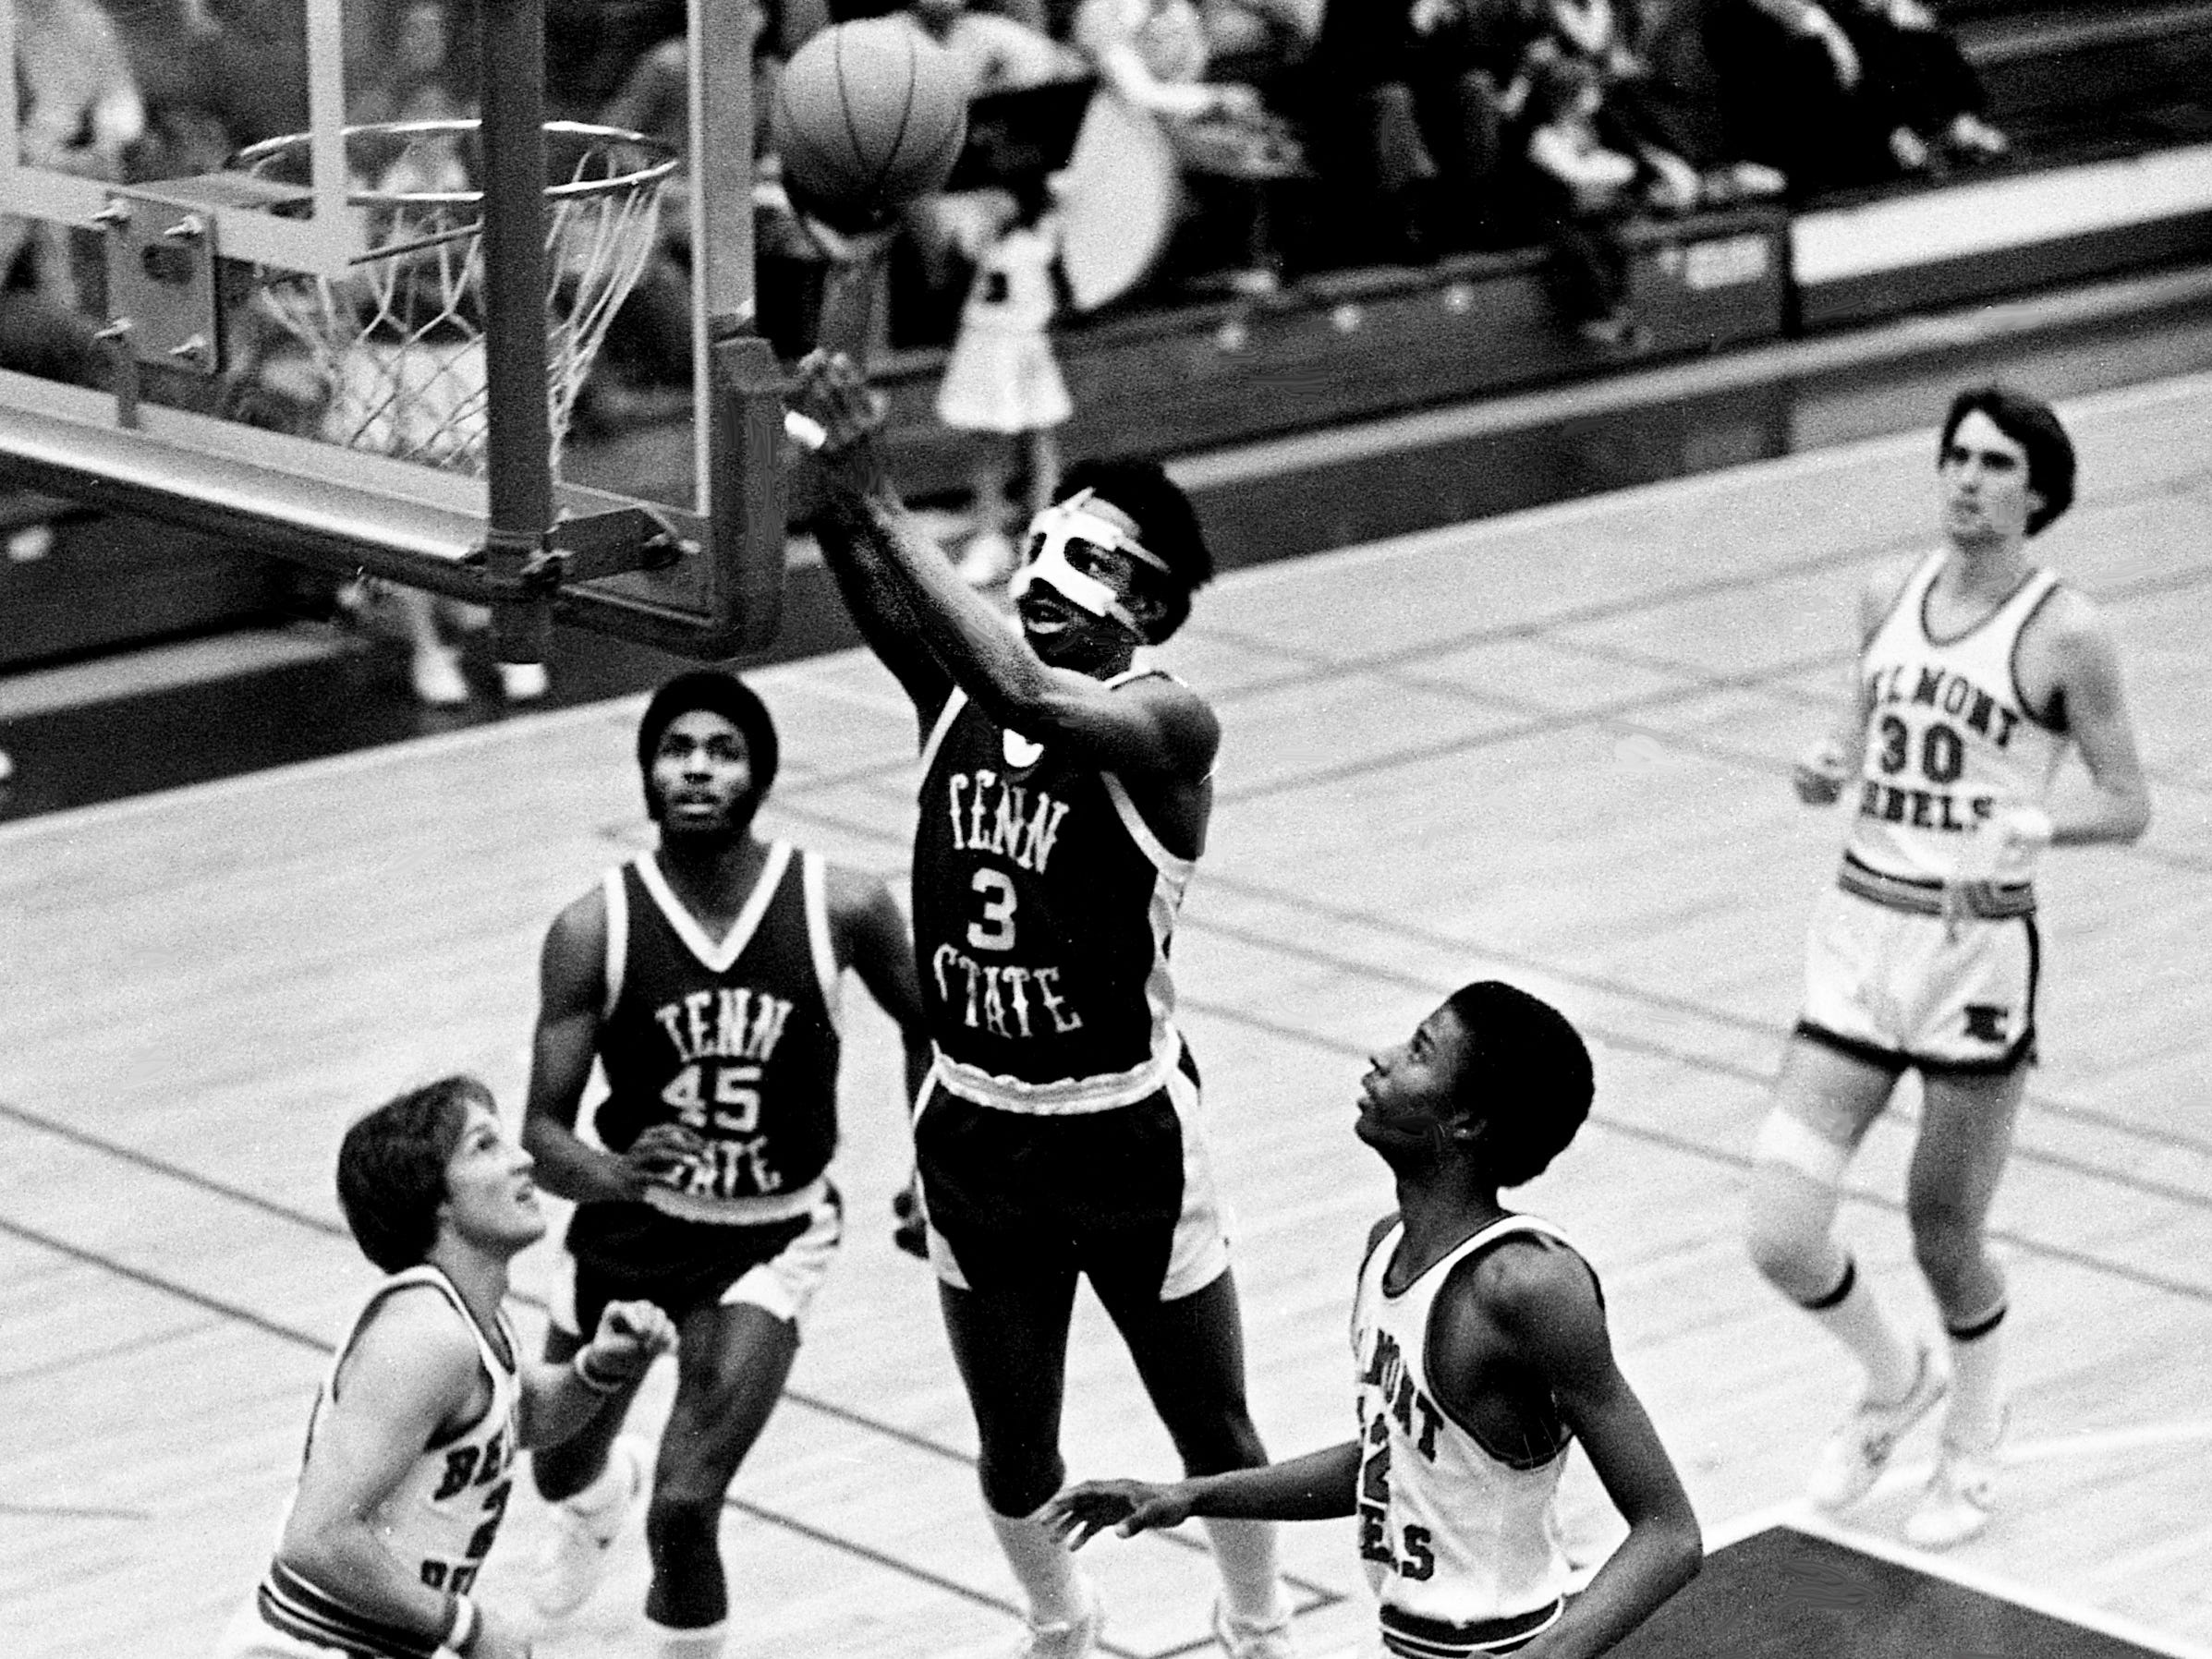 Tennessee State guard Kenneth Offutt (3) goes up for two of his 12 points in their 98-71 victory over the outmatched Belmont College on the road Jan. 25, 1979.